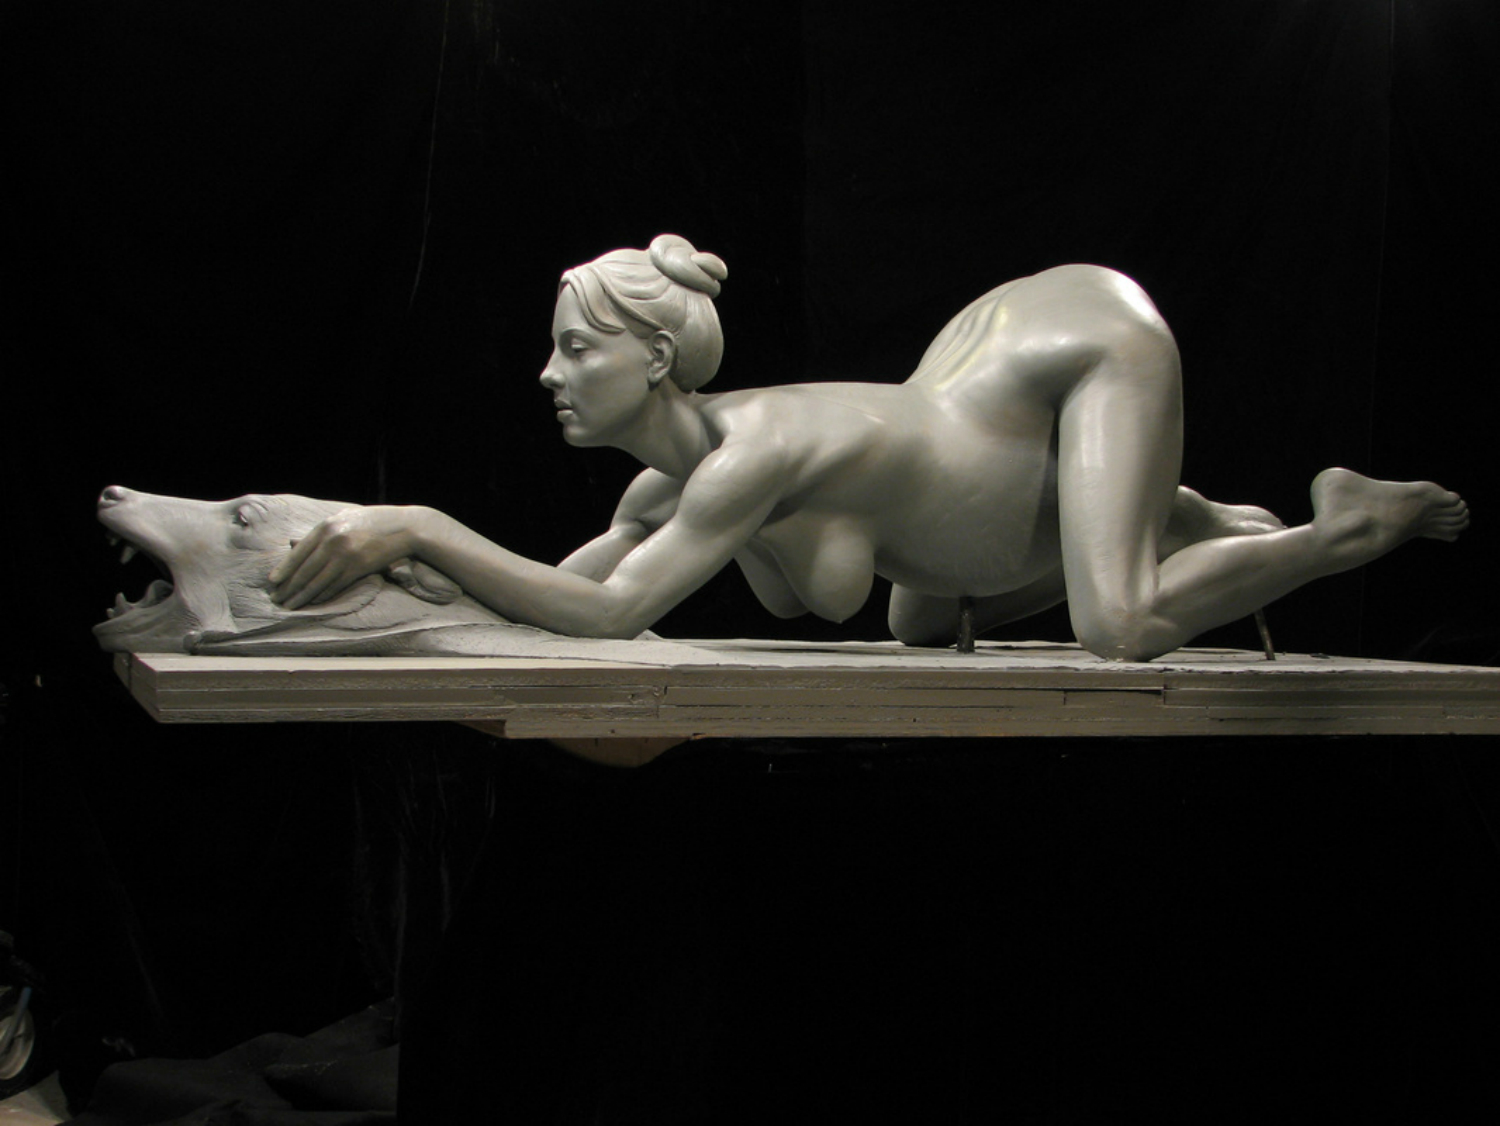 daniel edwards sculpture britney spears